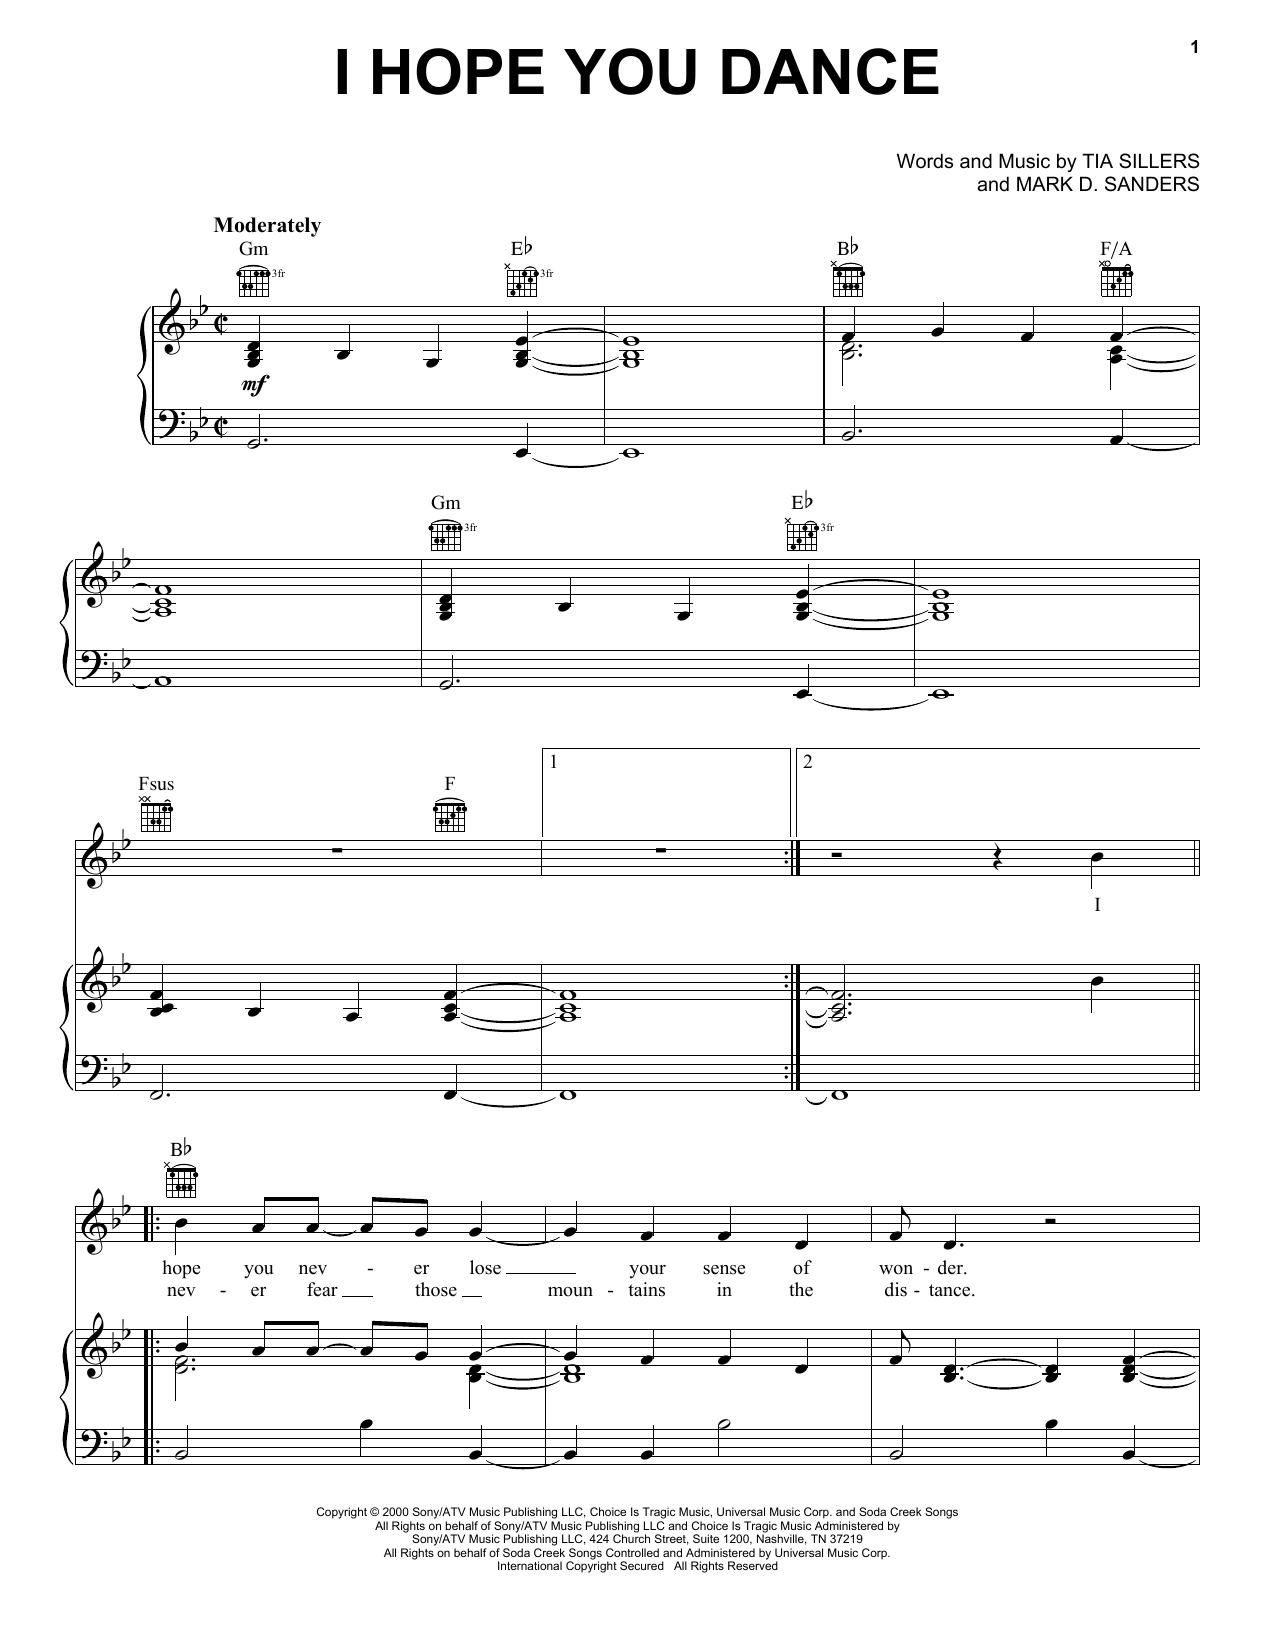 Lee Ann Womack with Sons of the Desert I Hope You Dance sheet music notes and chords. Download Printable PDF.